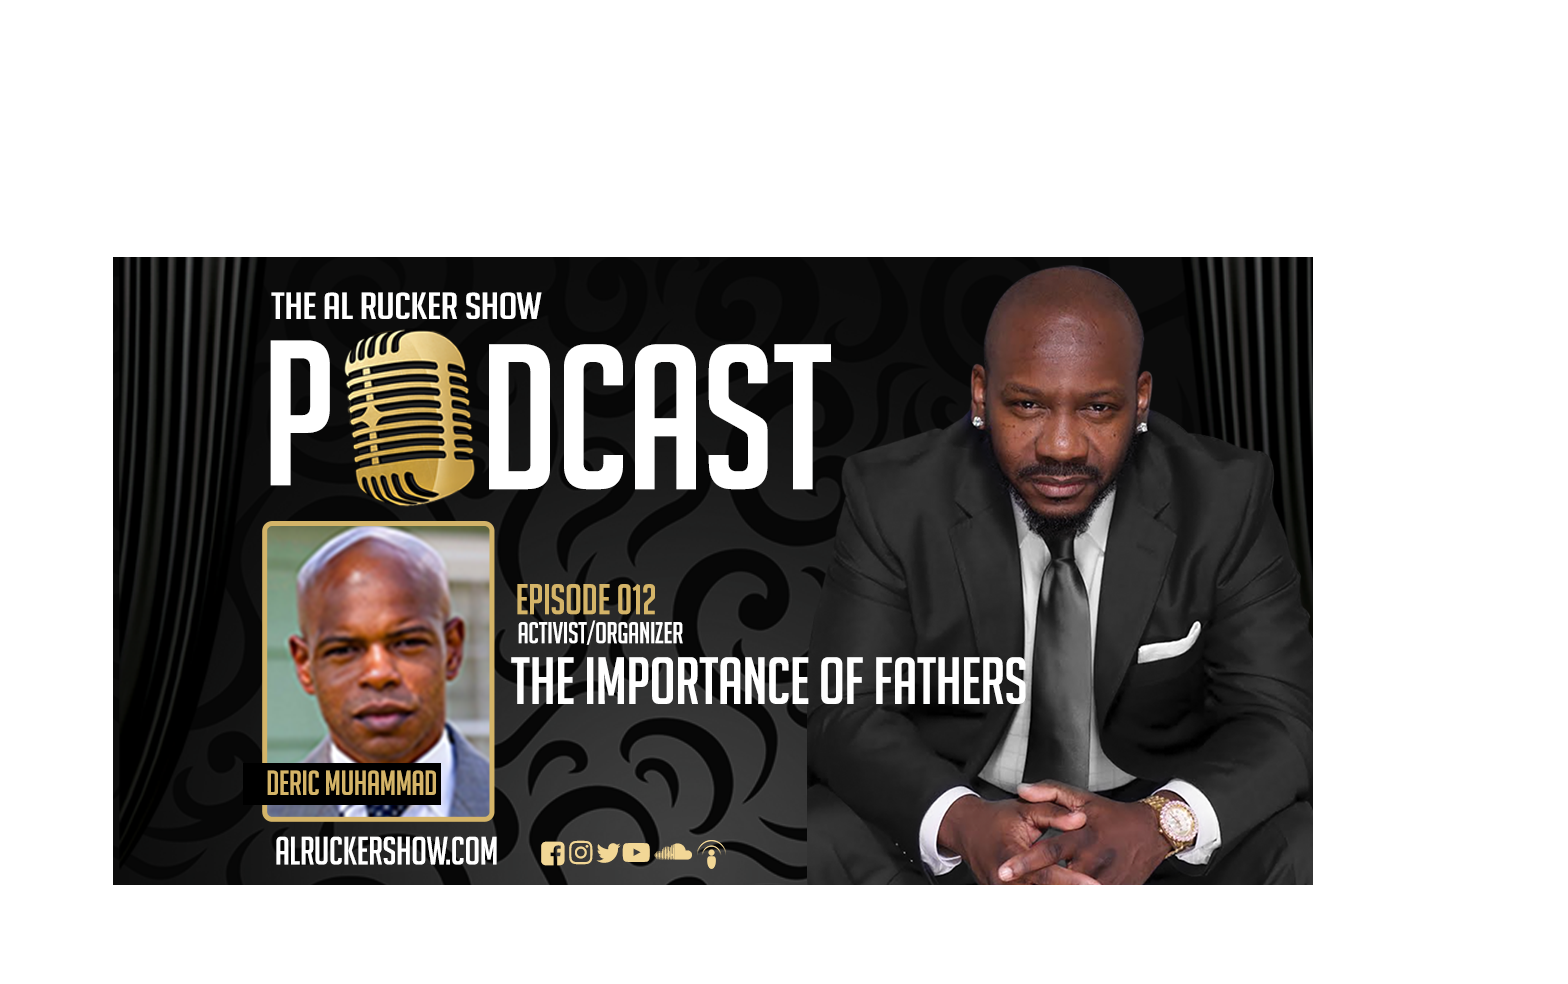 Al Rucker Show Podcast – The Importance of Fathers (Episode #012)